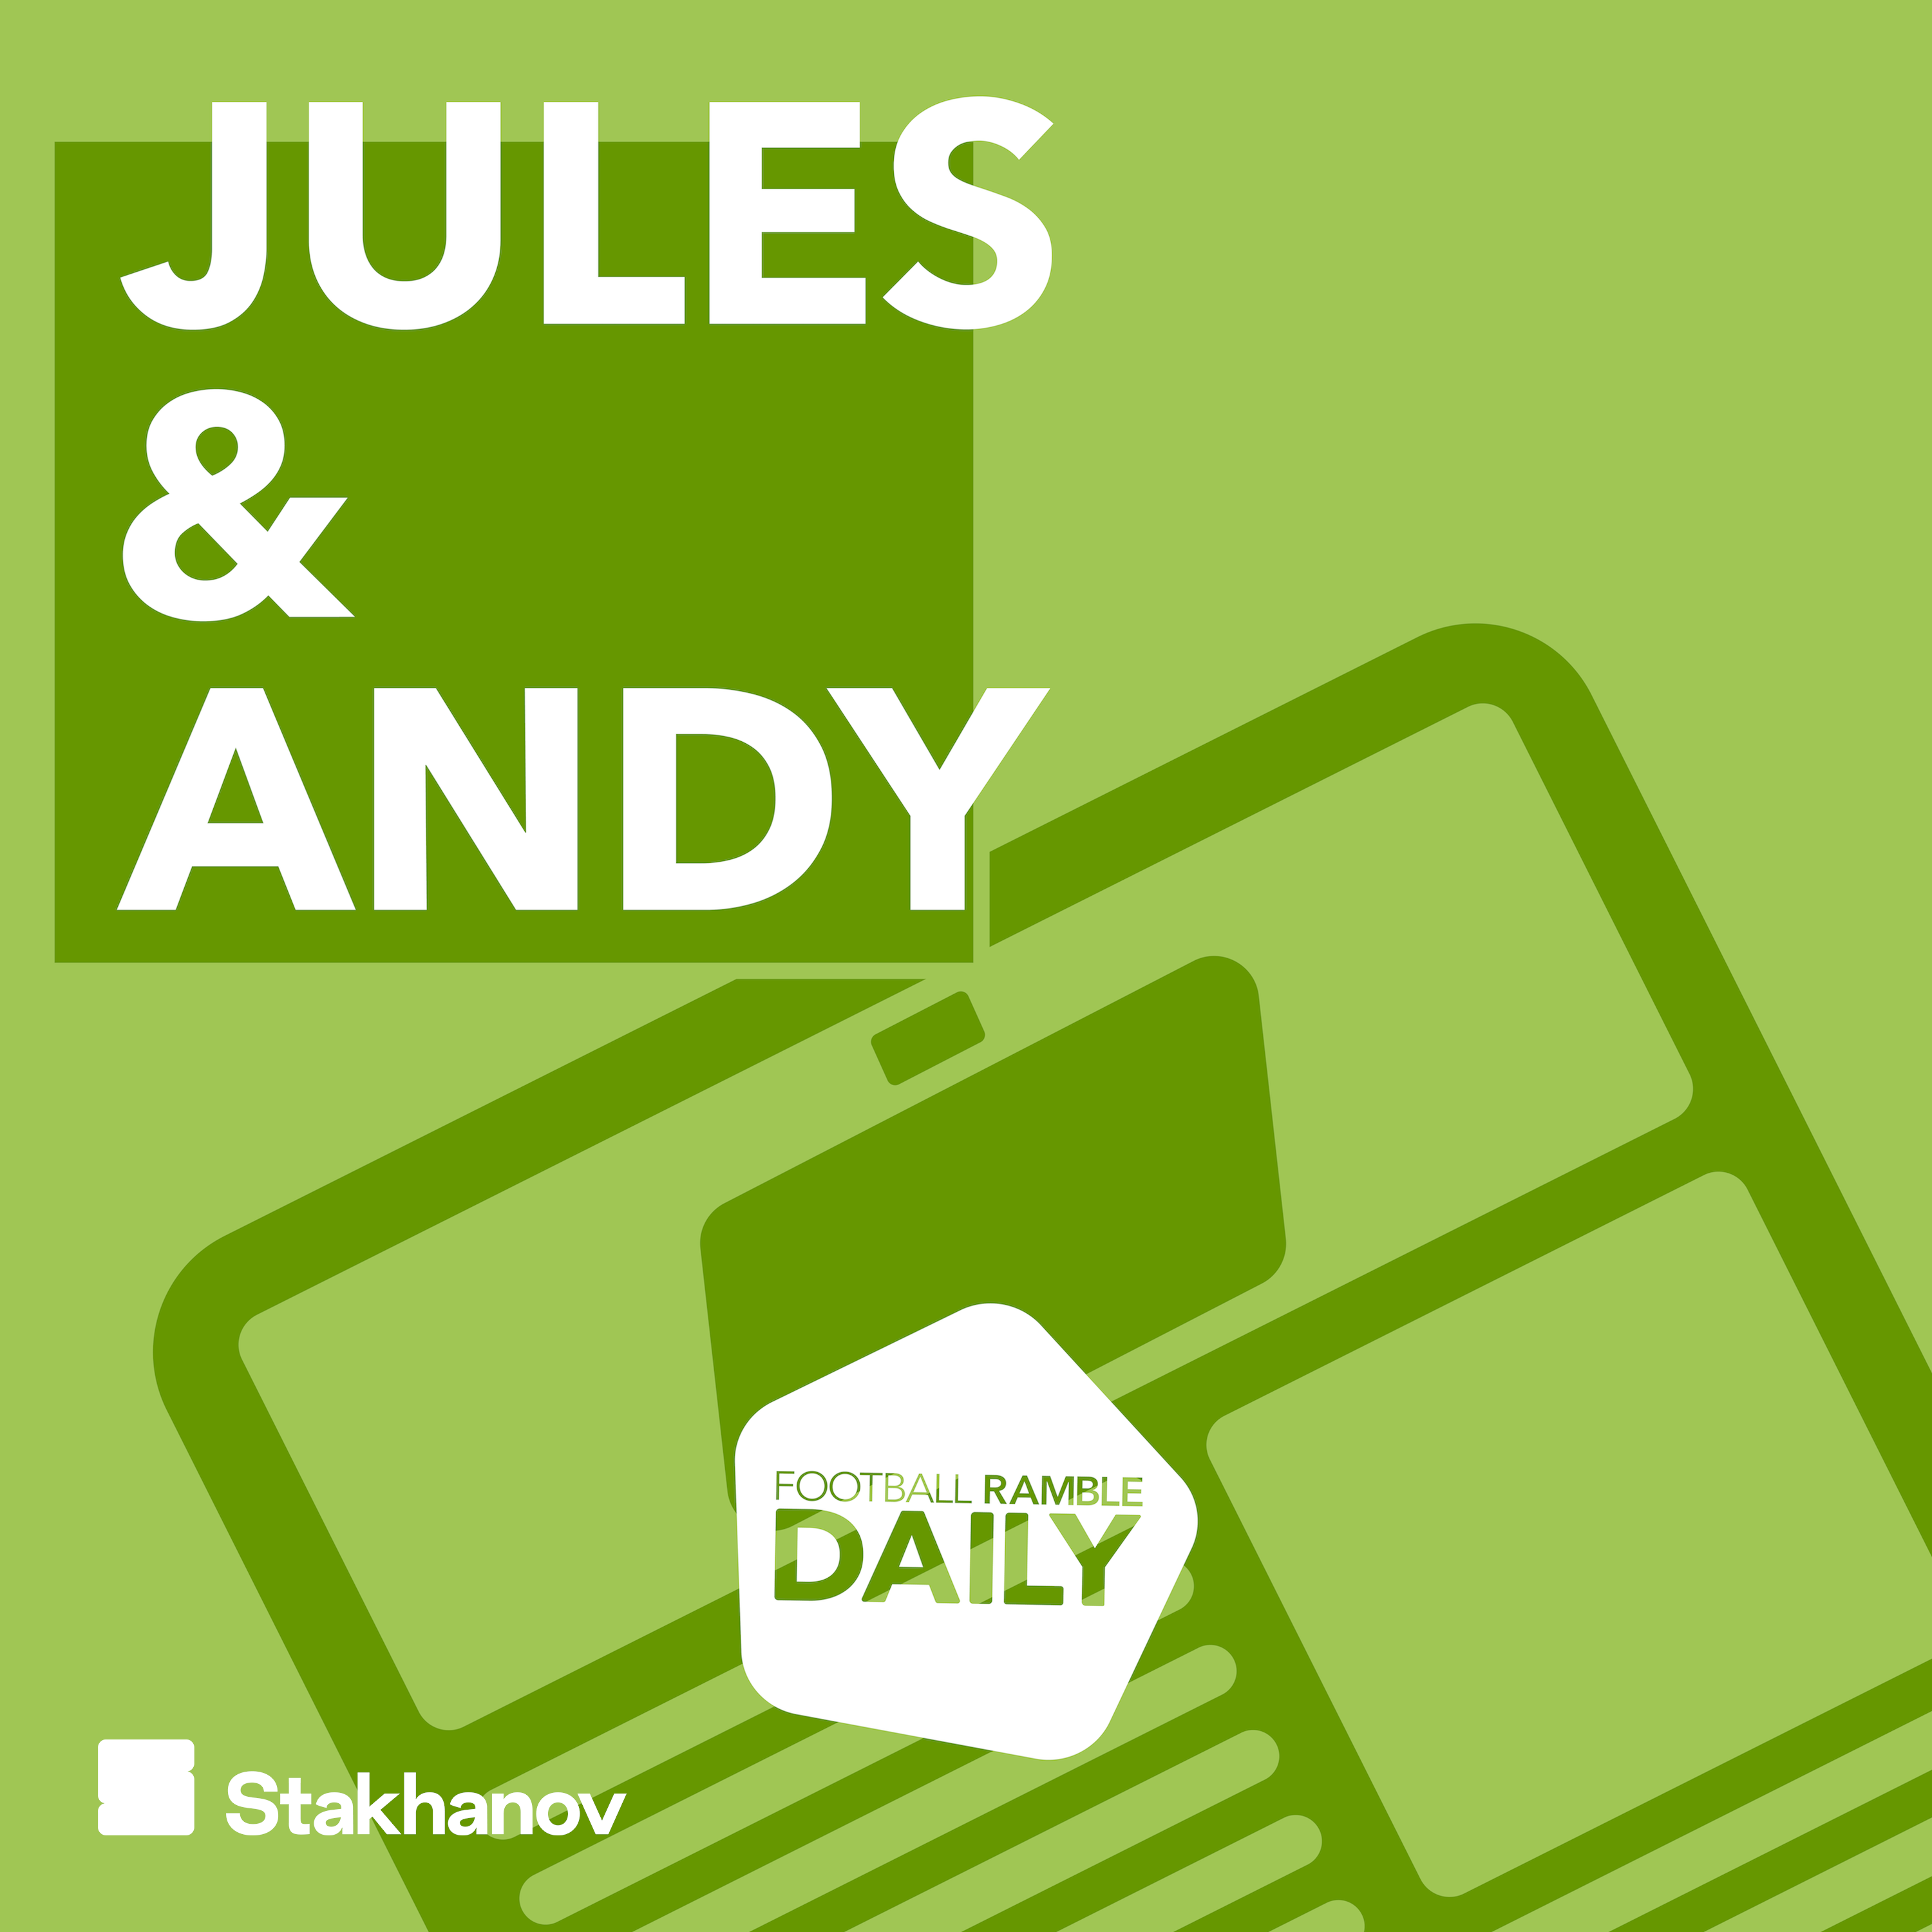 Jules & Andy: A superb win for Brighton, Southampton struggle on, and worries for Marco Silva